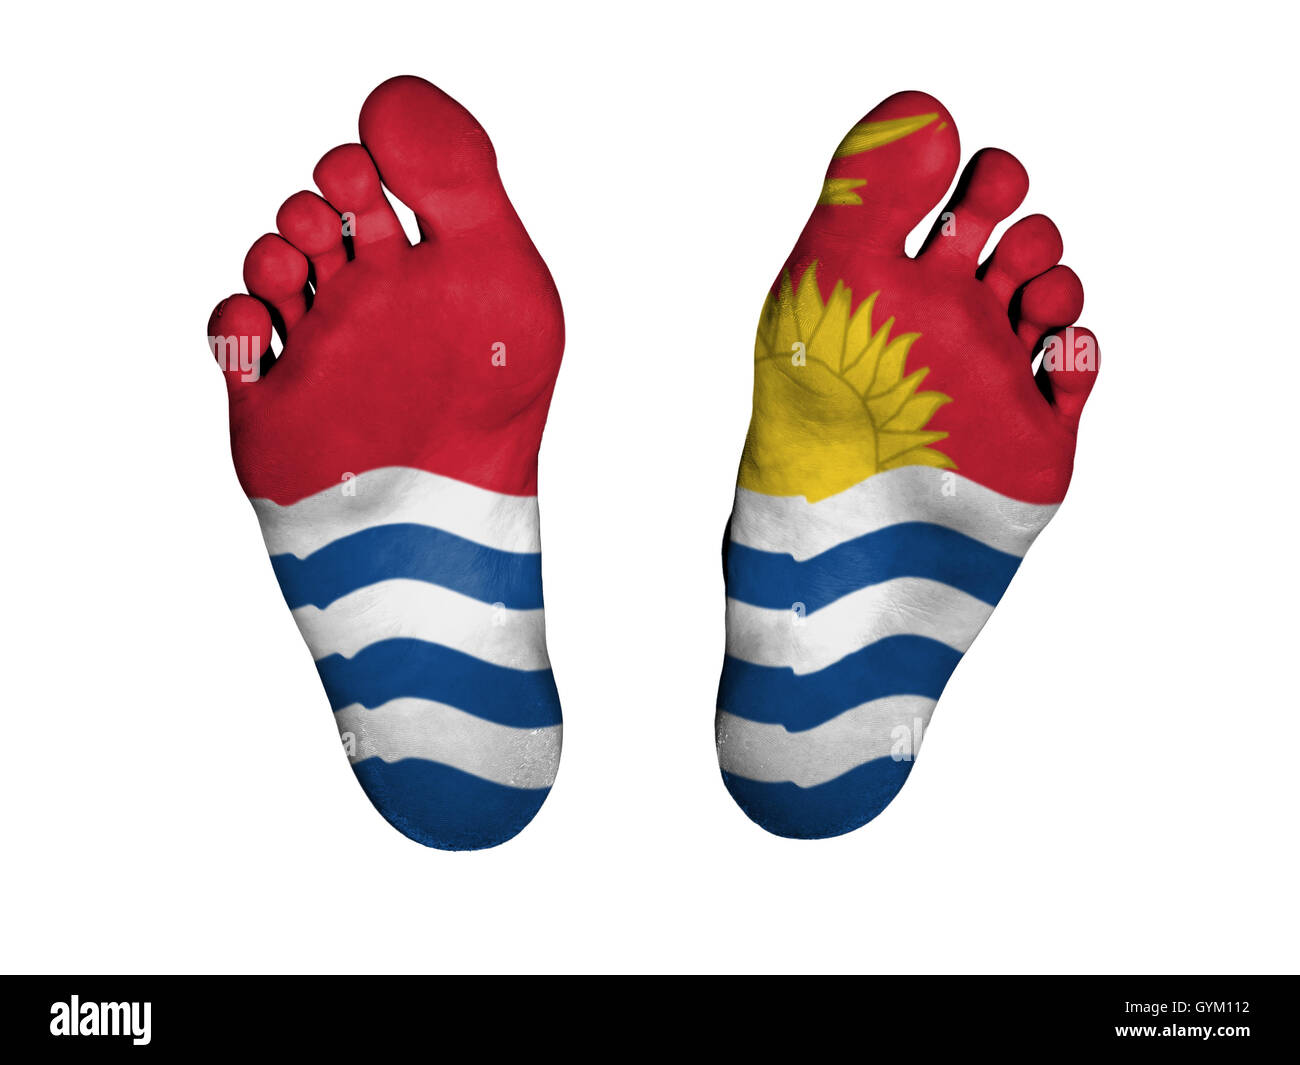 Feet with flag - Stock Image